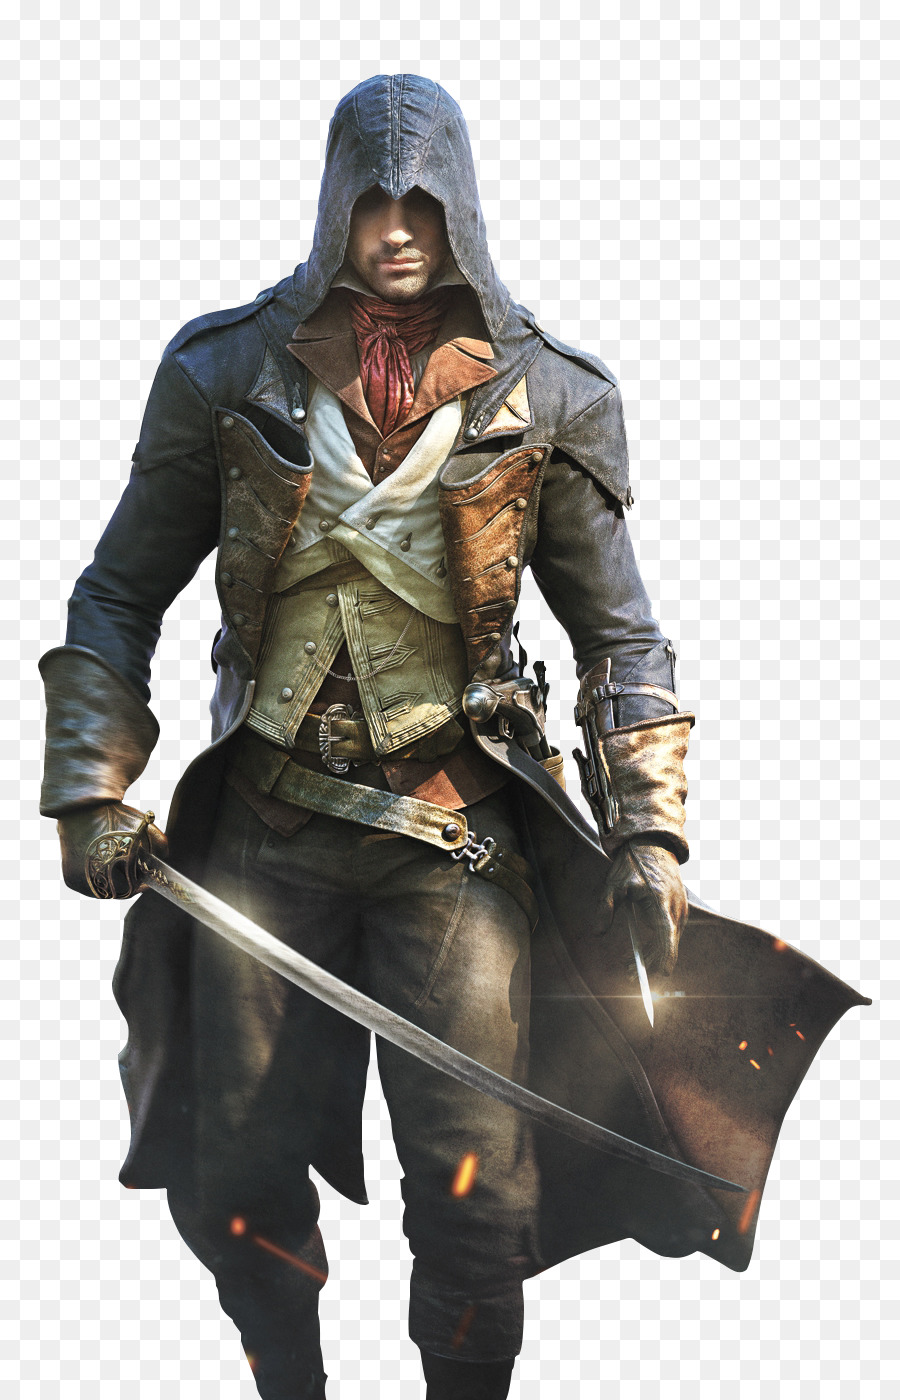 Descarga gratuita de Assassins Creed Unity, Assassins Creed Iv Black Flag, Assassins Creed Iii imágenes PNG